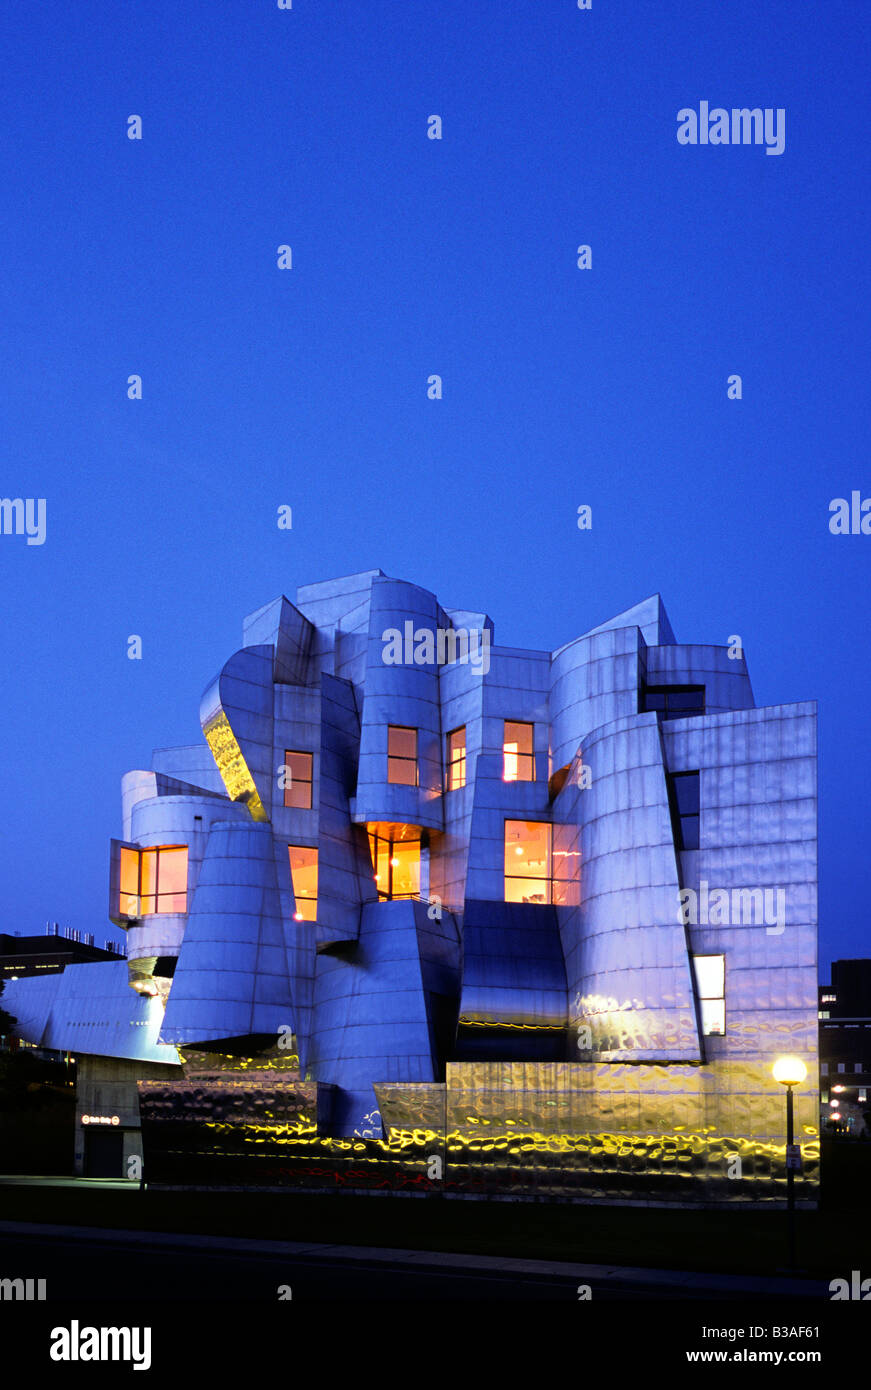 STAINLESS-STEEL CLAD FREDERICK R. WEISMAN MUSEUM IN MINNEAPOLIS, MINNESOTA.  ARCHITECT IS FRANK GEHRY. - Stock Image